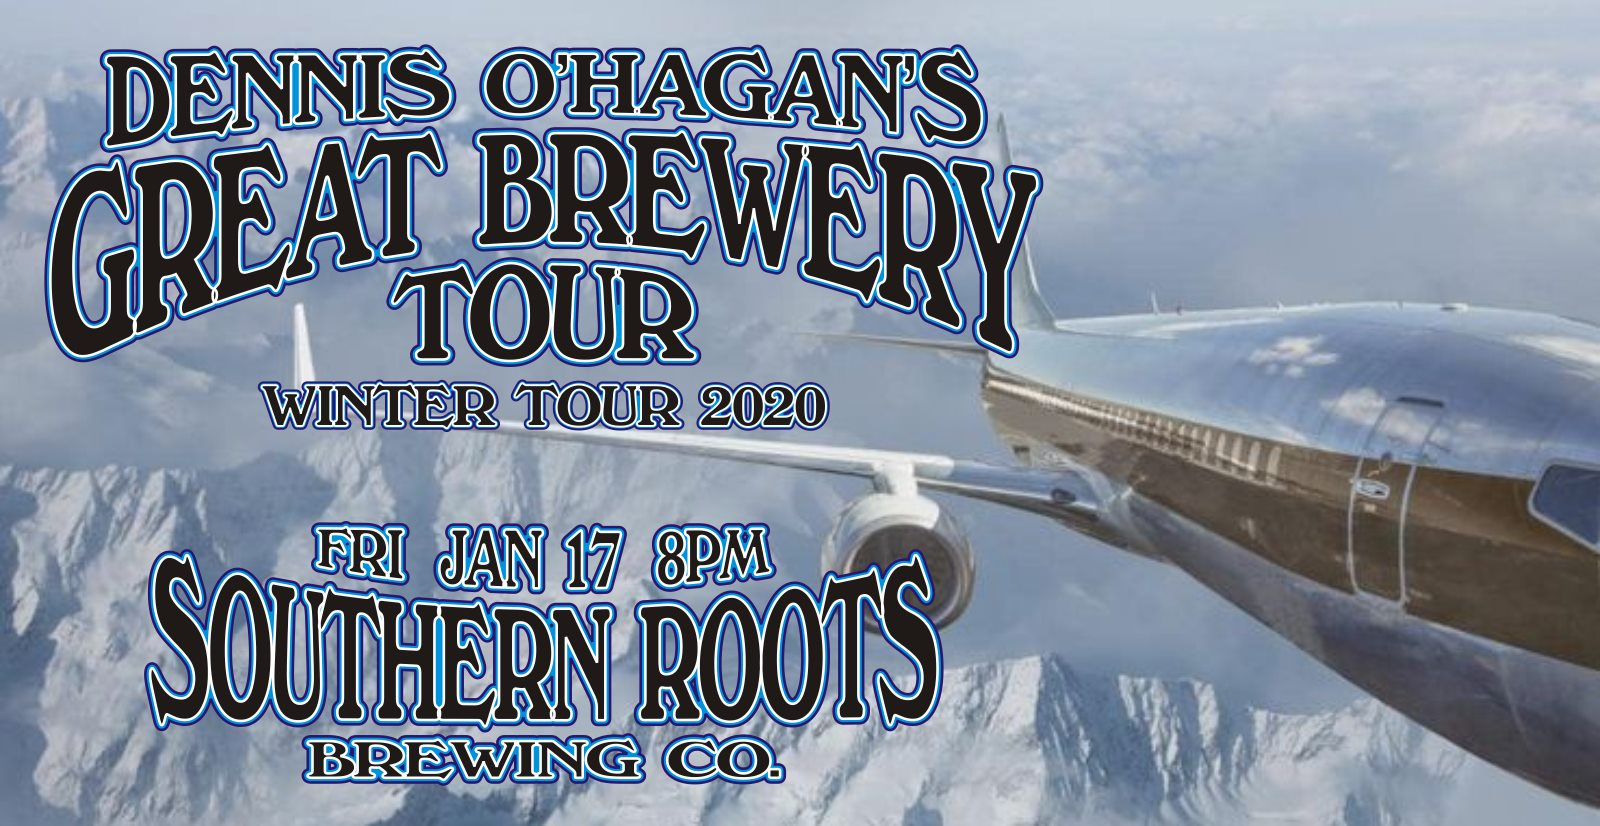 Dennis O'Hagan's Great Brewery Tour Plays Southern Roots Brewing